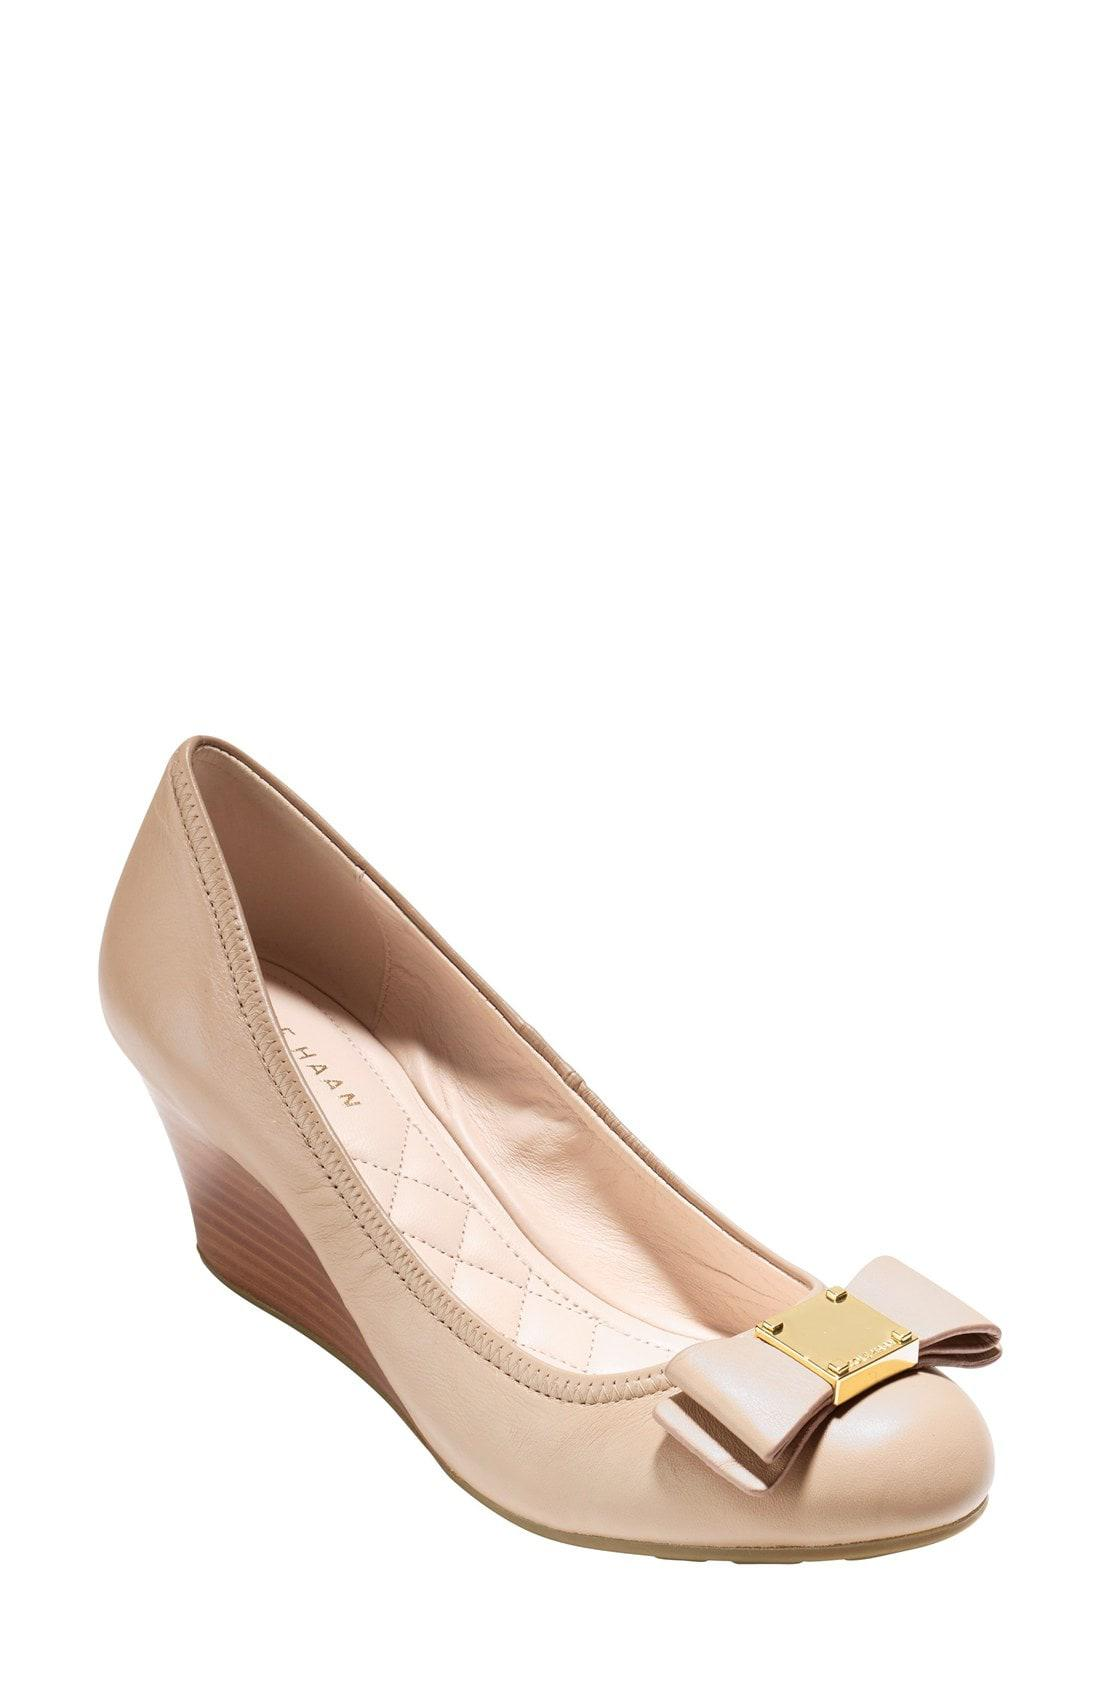 553b1bad6c Lyst - Cole Haan 'tali Grand' Bow Wedge Pump in Natural